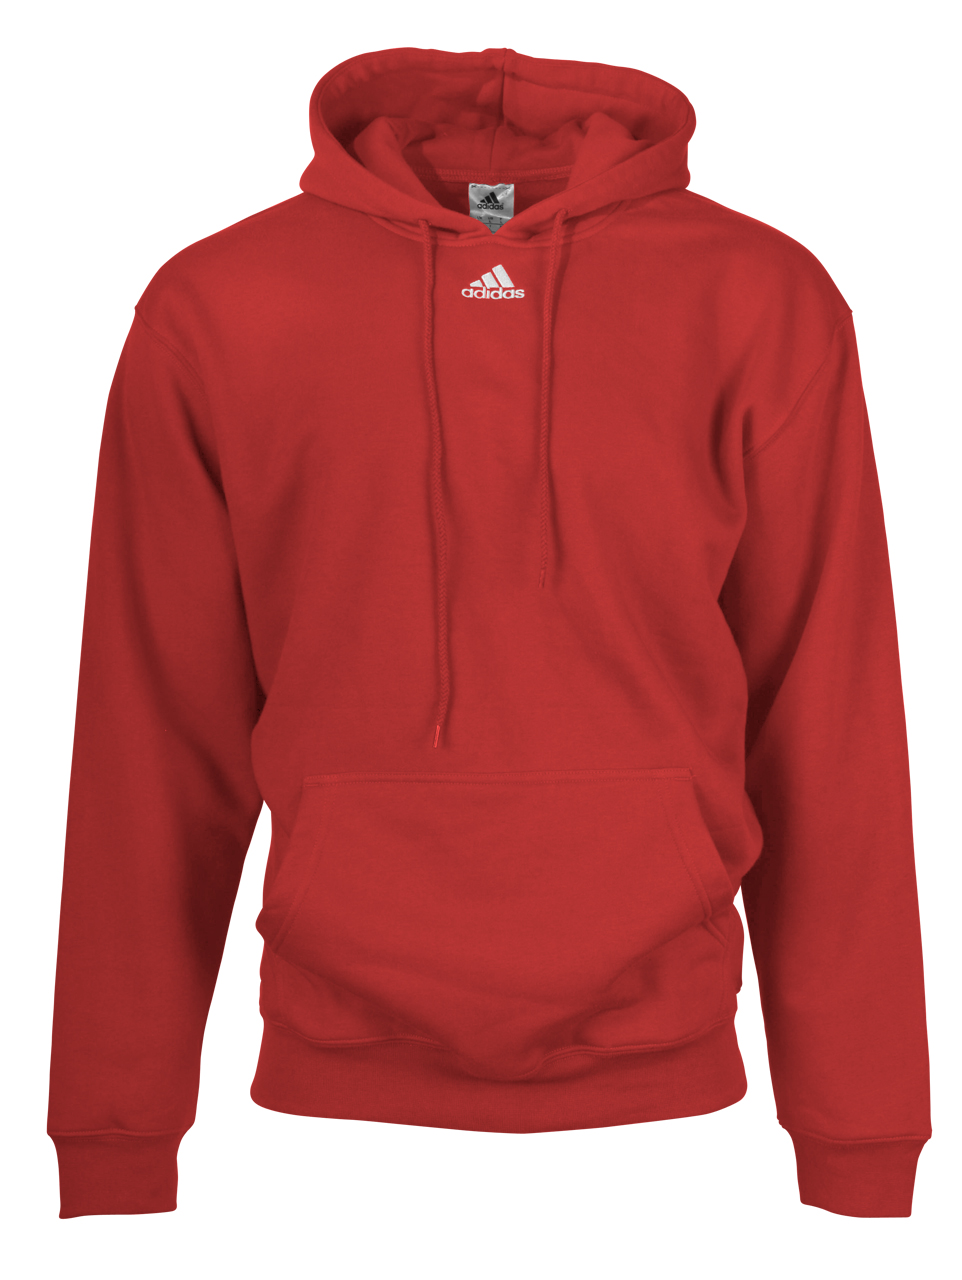 3c5e92dbccaa ADIDAS Adult Team Fleece Hoodie